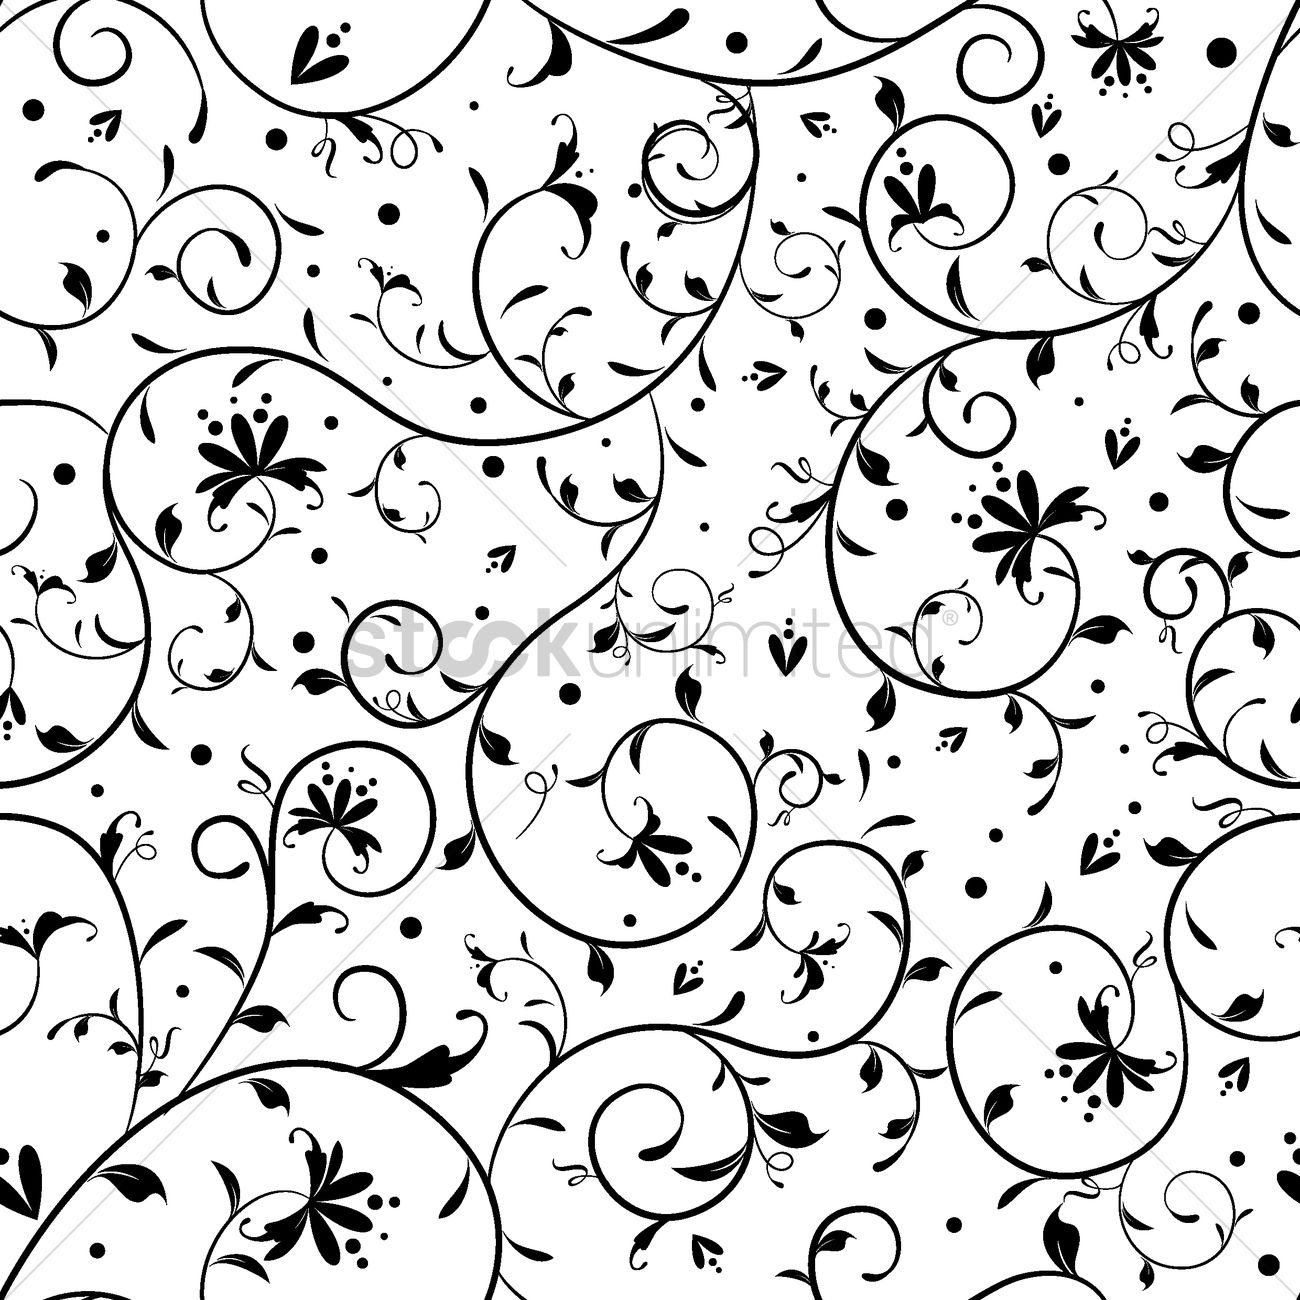 Simple floral pattern design Vector Image - 1506075 ...